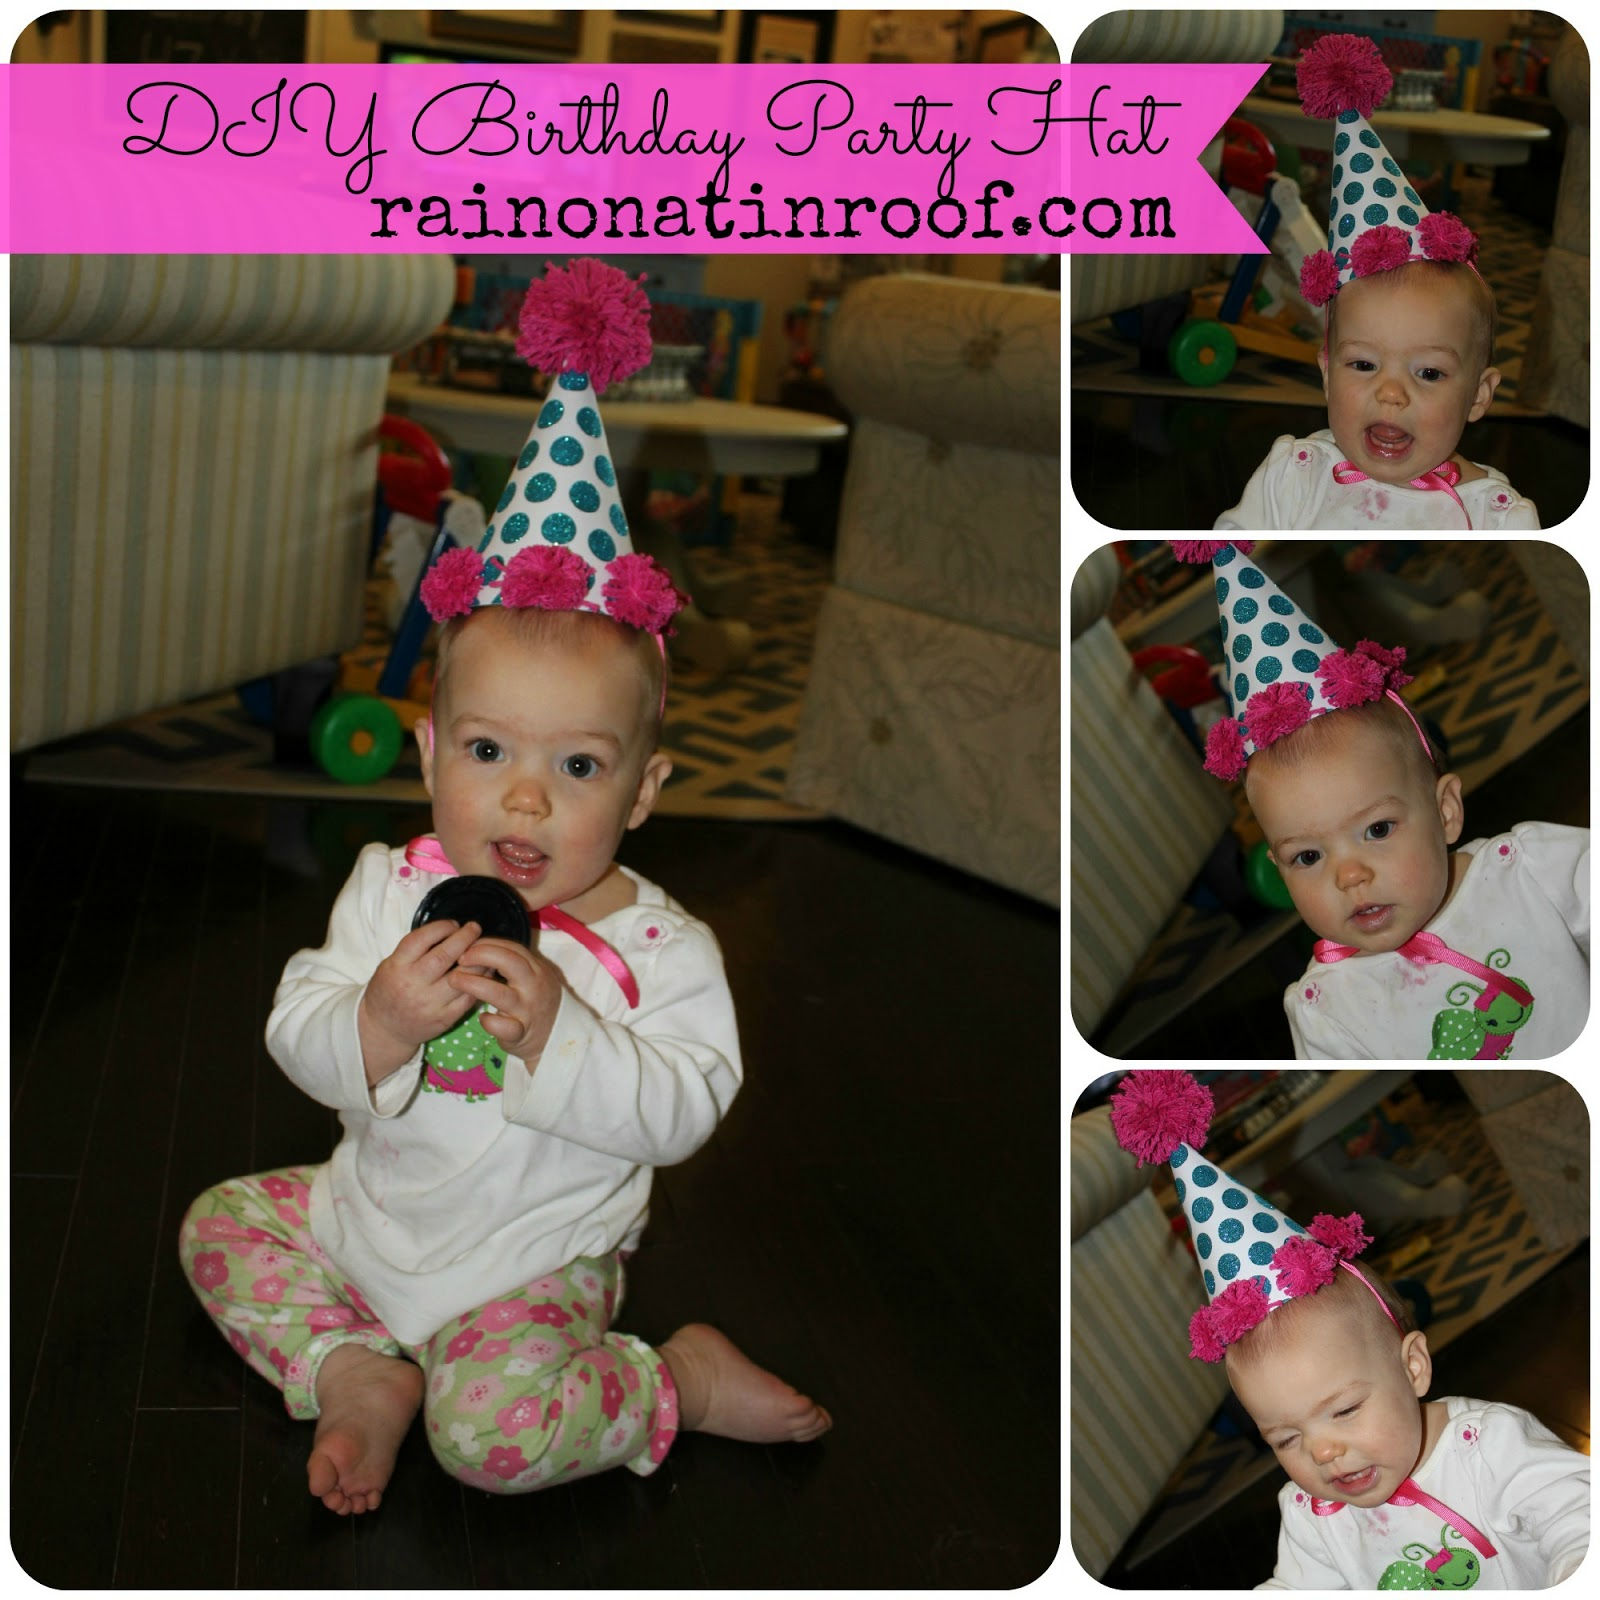 DIY Birthday Party Hat For Less Than $5 In 15 Minutes